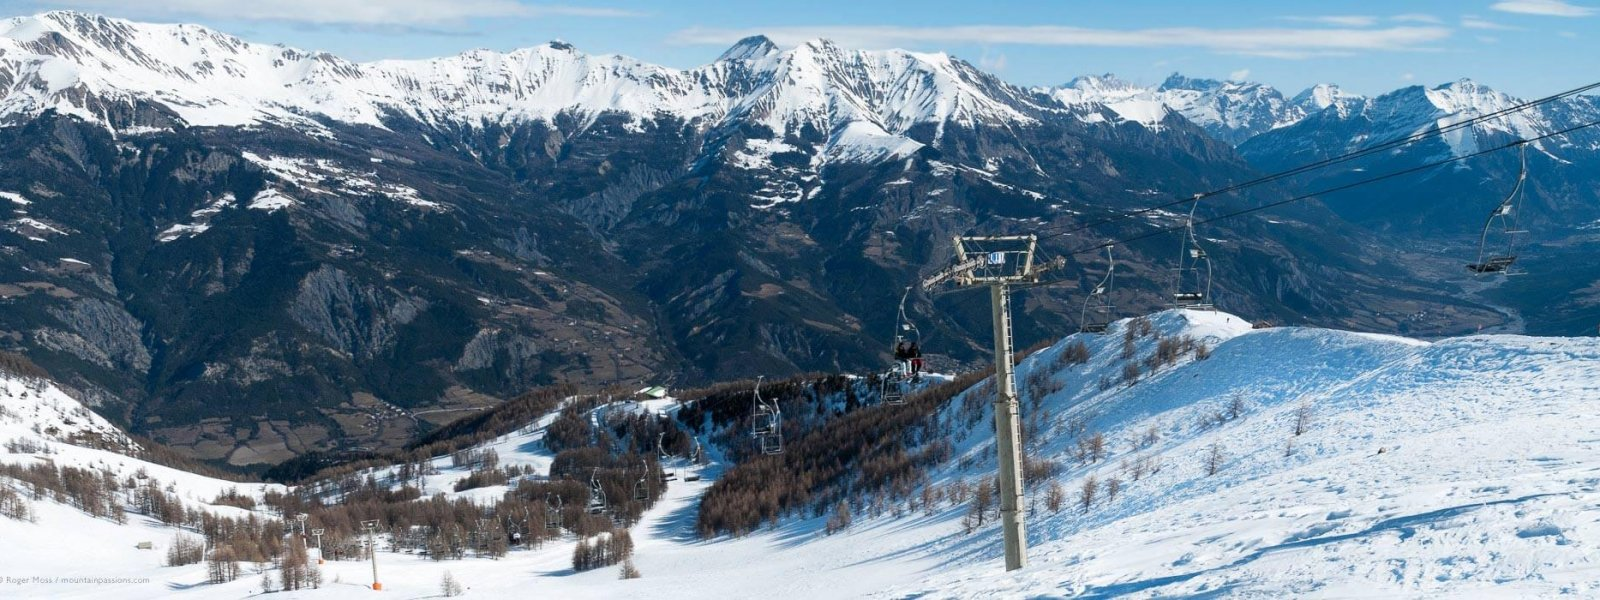 Skiers-on-chairlift-with-mountain-scenery-at-Pra-Loup-in-the-French-Alps-17941